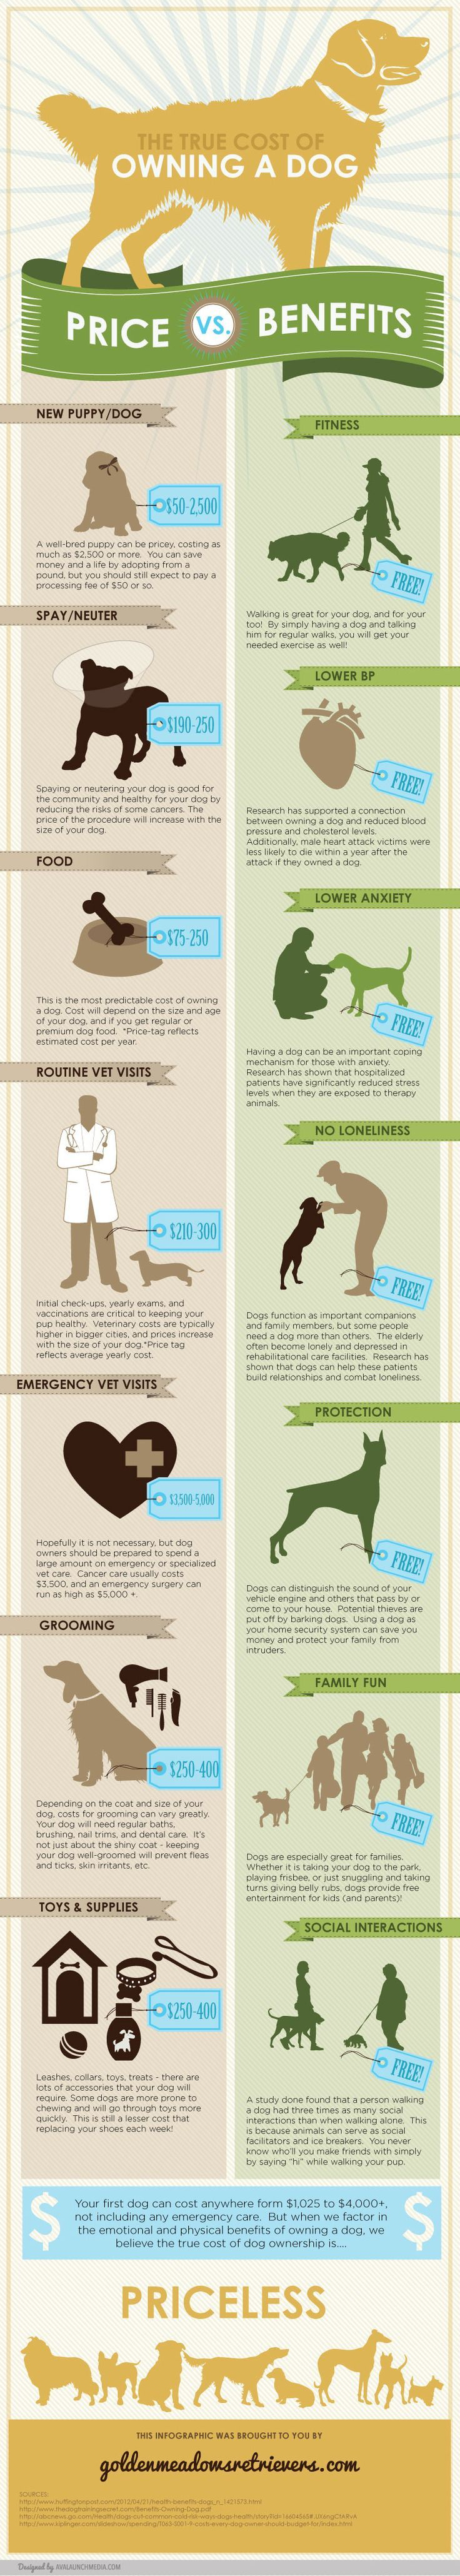 Golden Meadows Retrievers True Cost of Dog Ownership Infographic